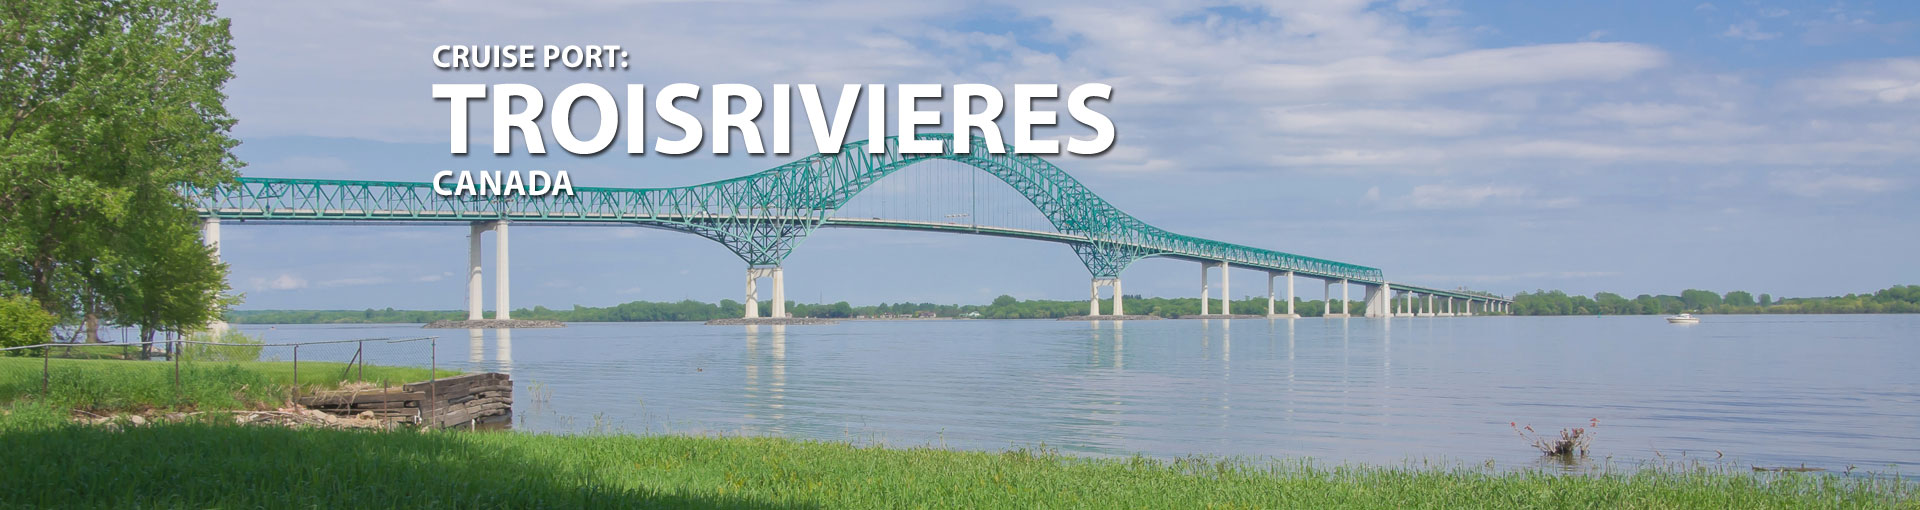 Cruises to Troisrivieres, Canada